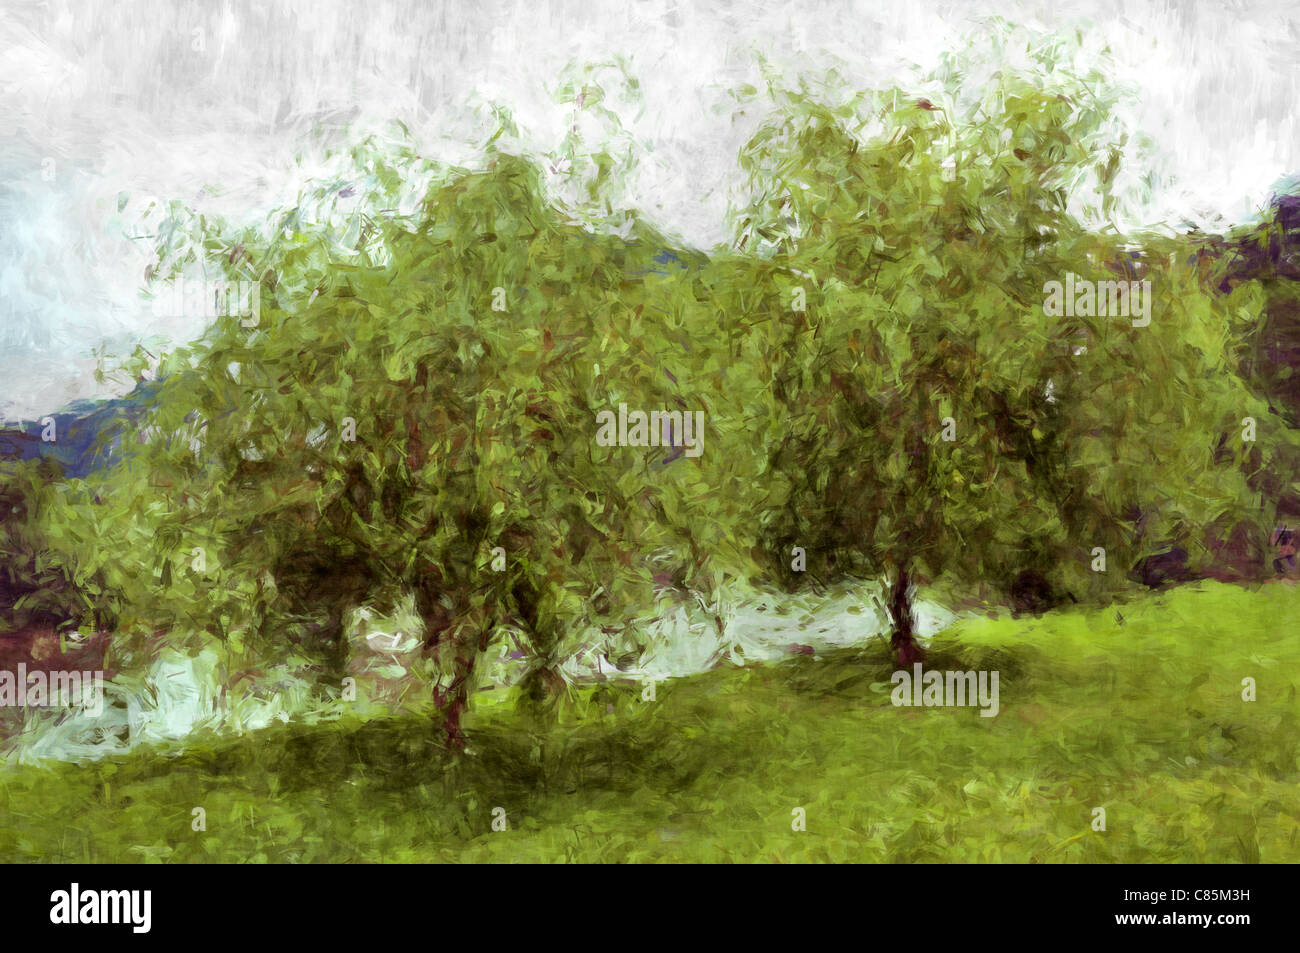 Oil Painting Tree Stock Photos & Oil Painting Tree Stock Images - Alamy